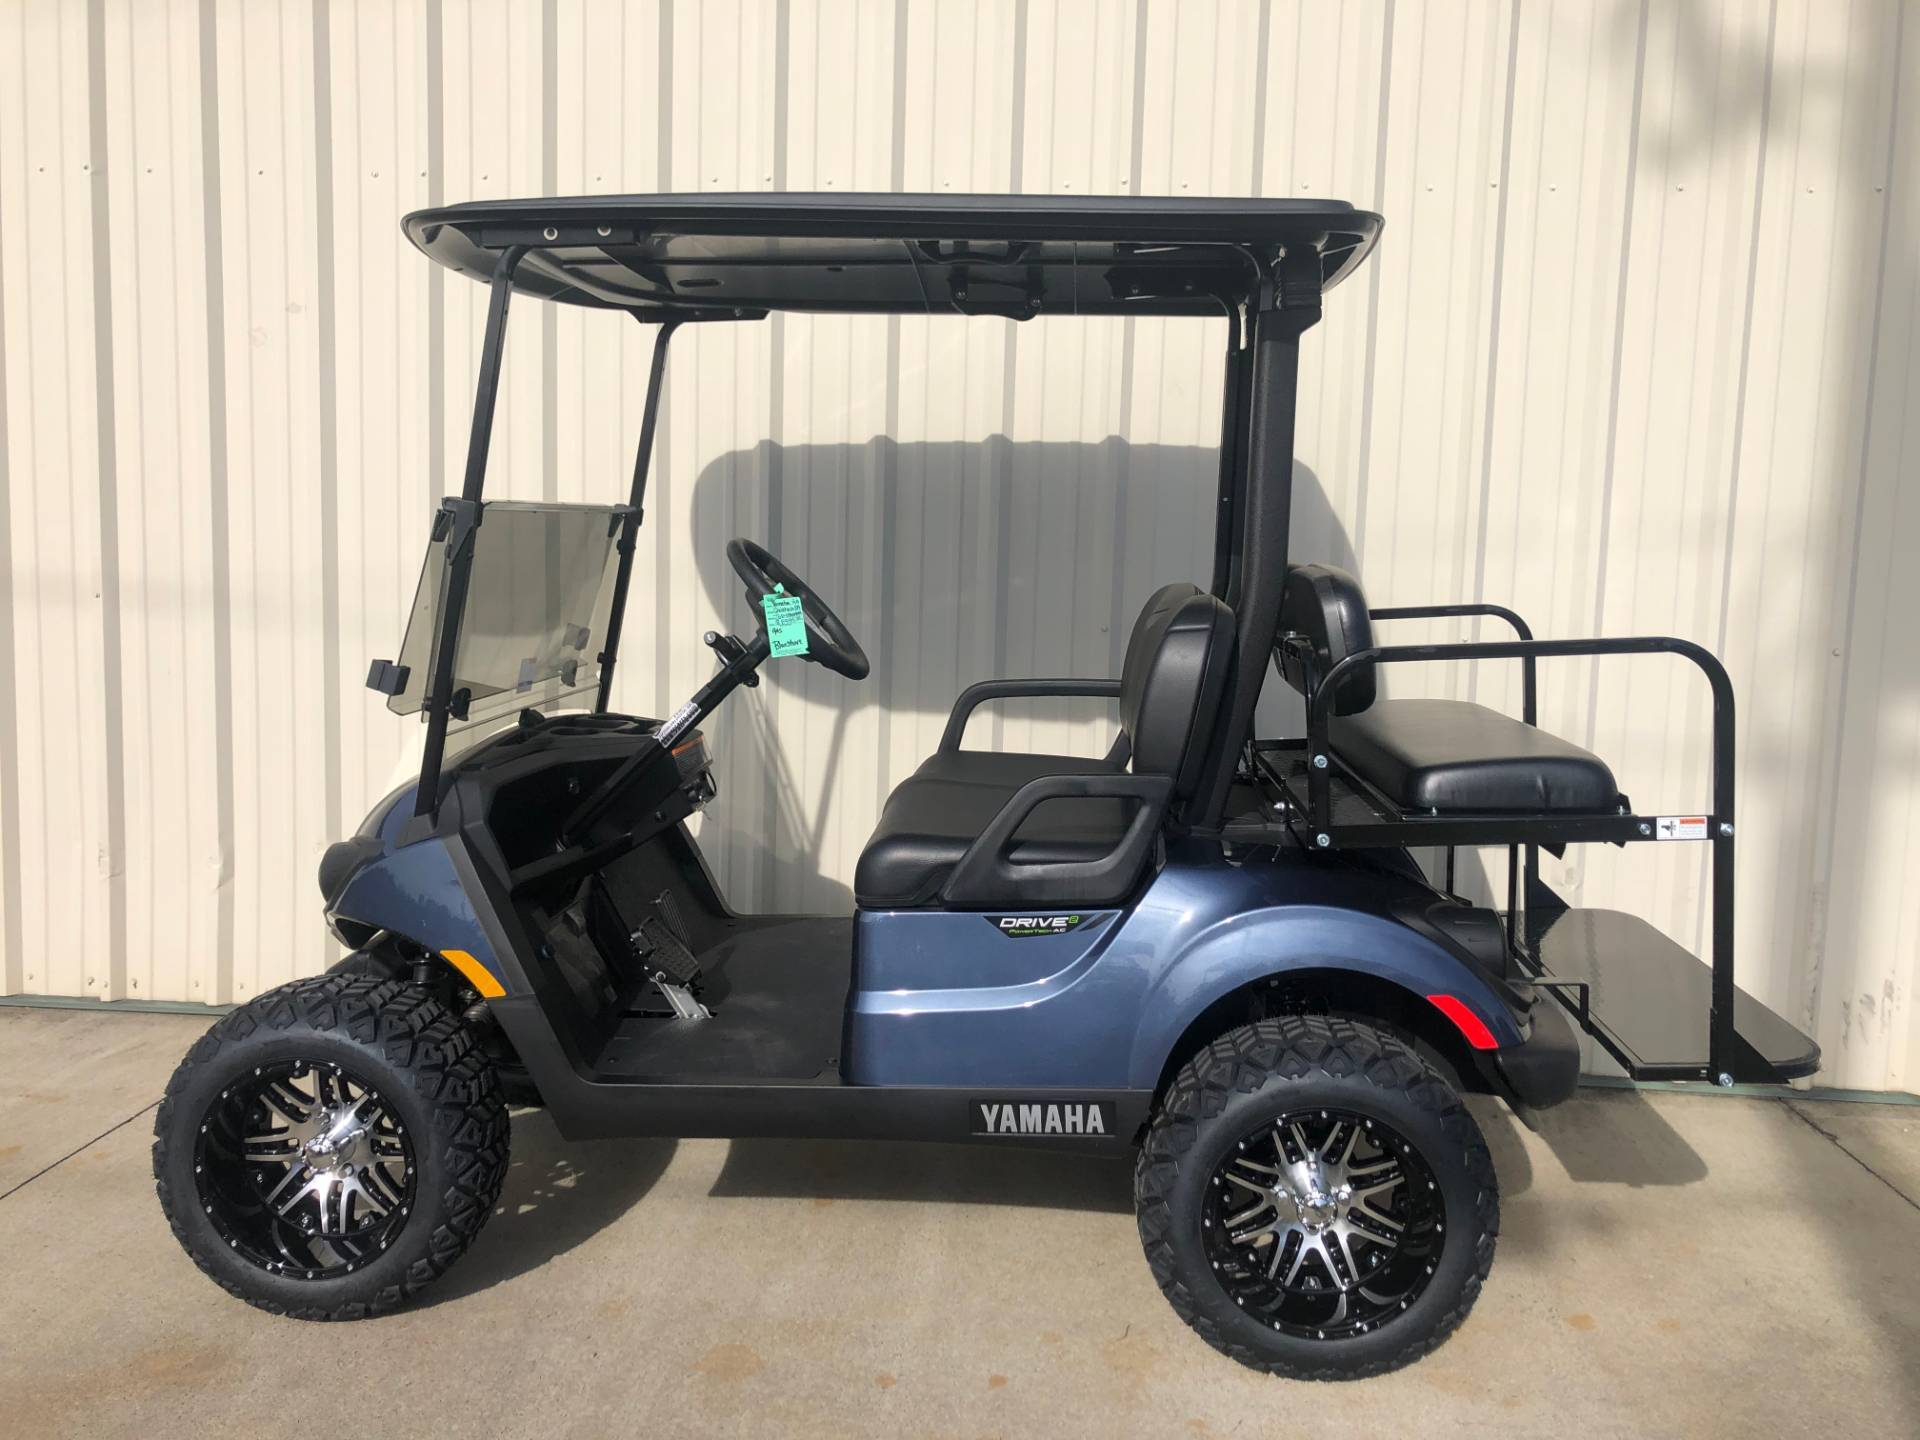 2020 Yamaha DRIVE 2 POWERTECH AC ELECTRIC in Tifton, Georgia - Photo 2